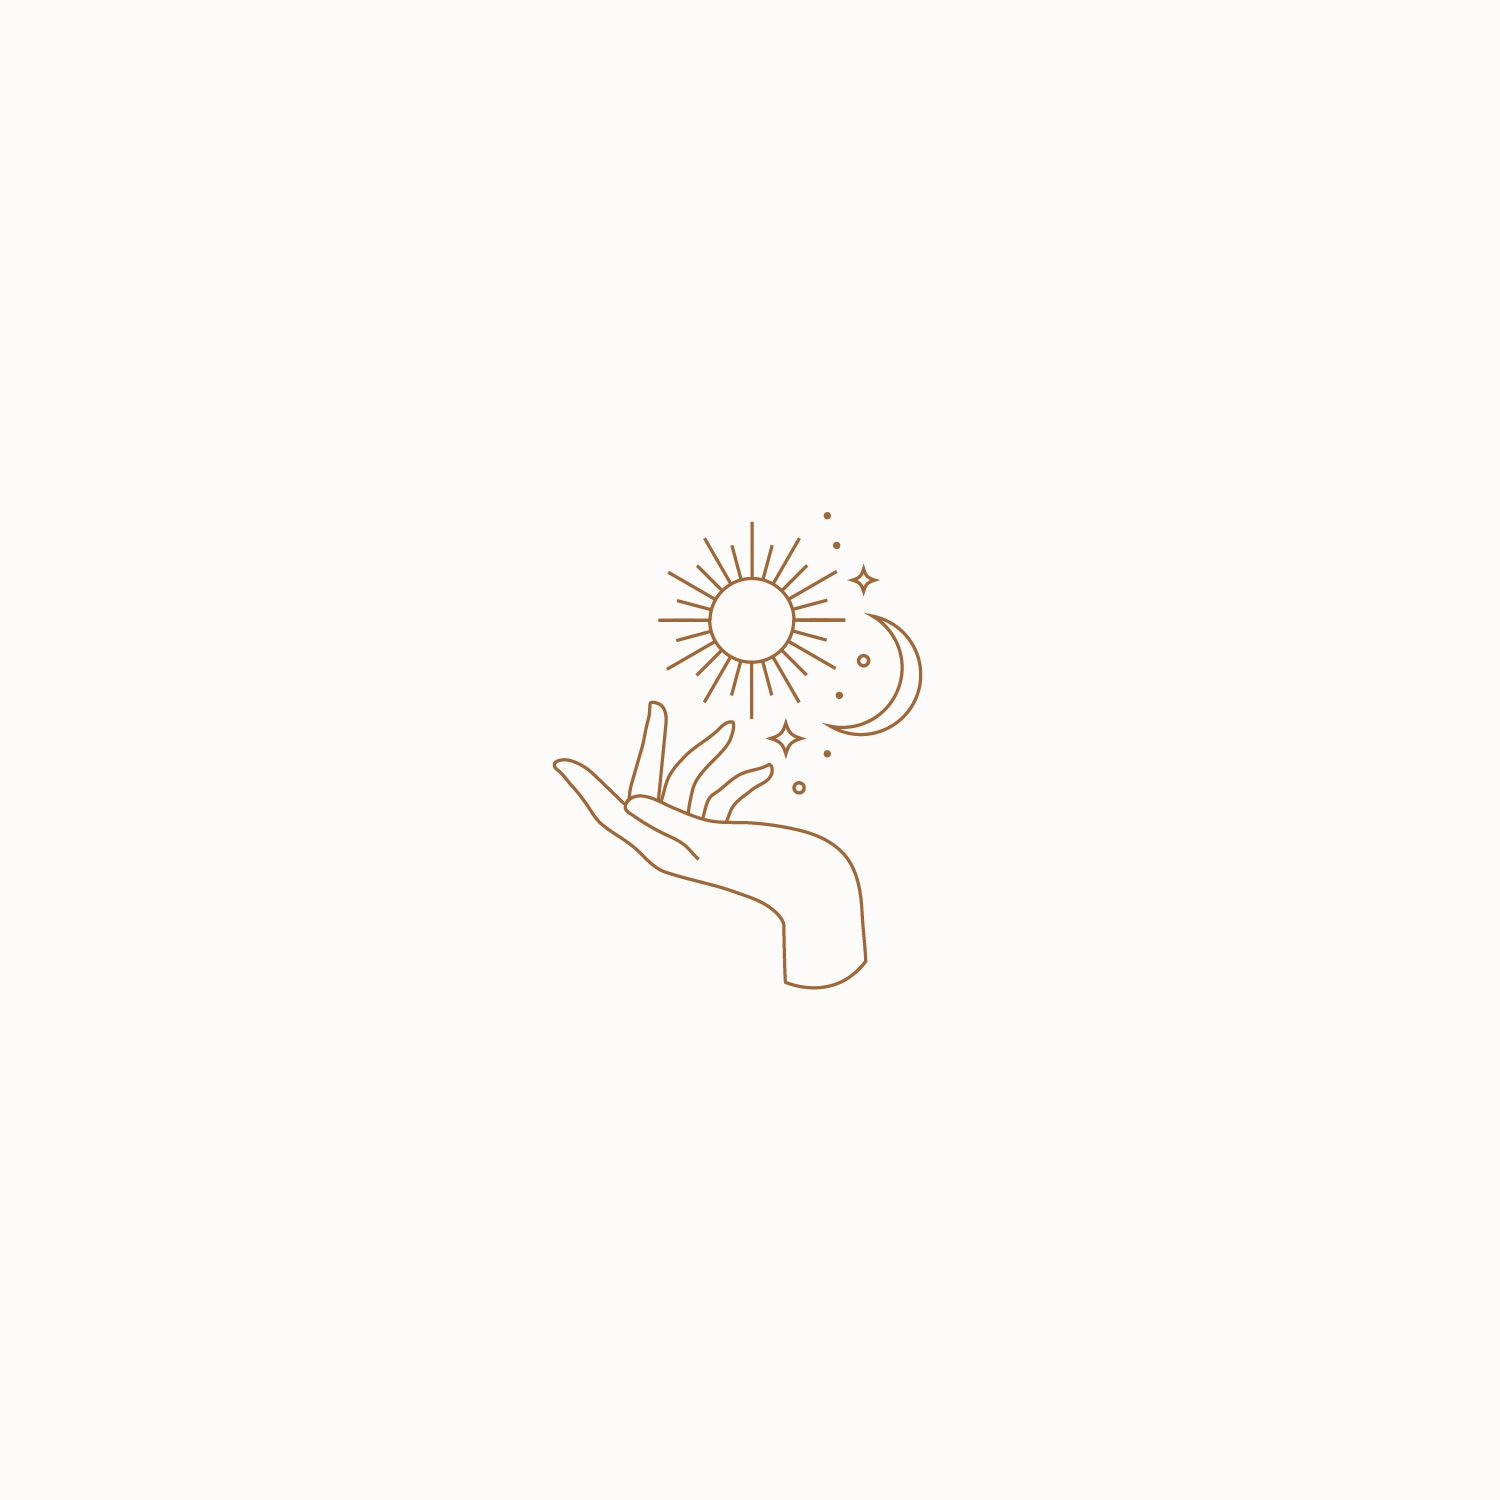 Moon Sun Hand Illustration Minimal Moon Tattoo Made By Minimalmarks In 2020 Line Art Tattoos Moon Tattoo Hand Illustration